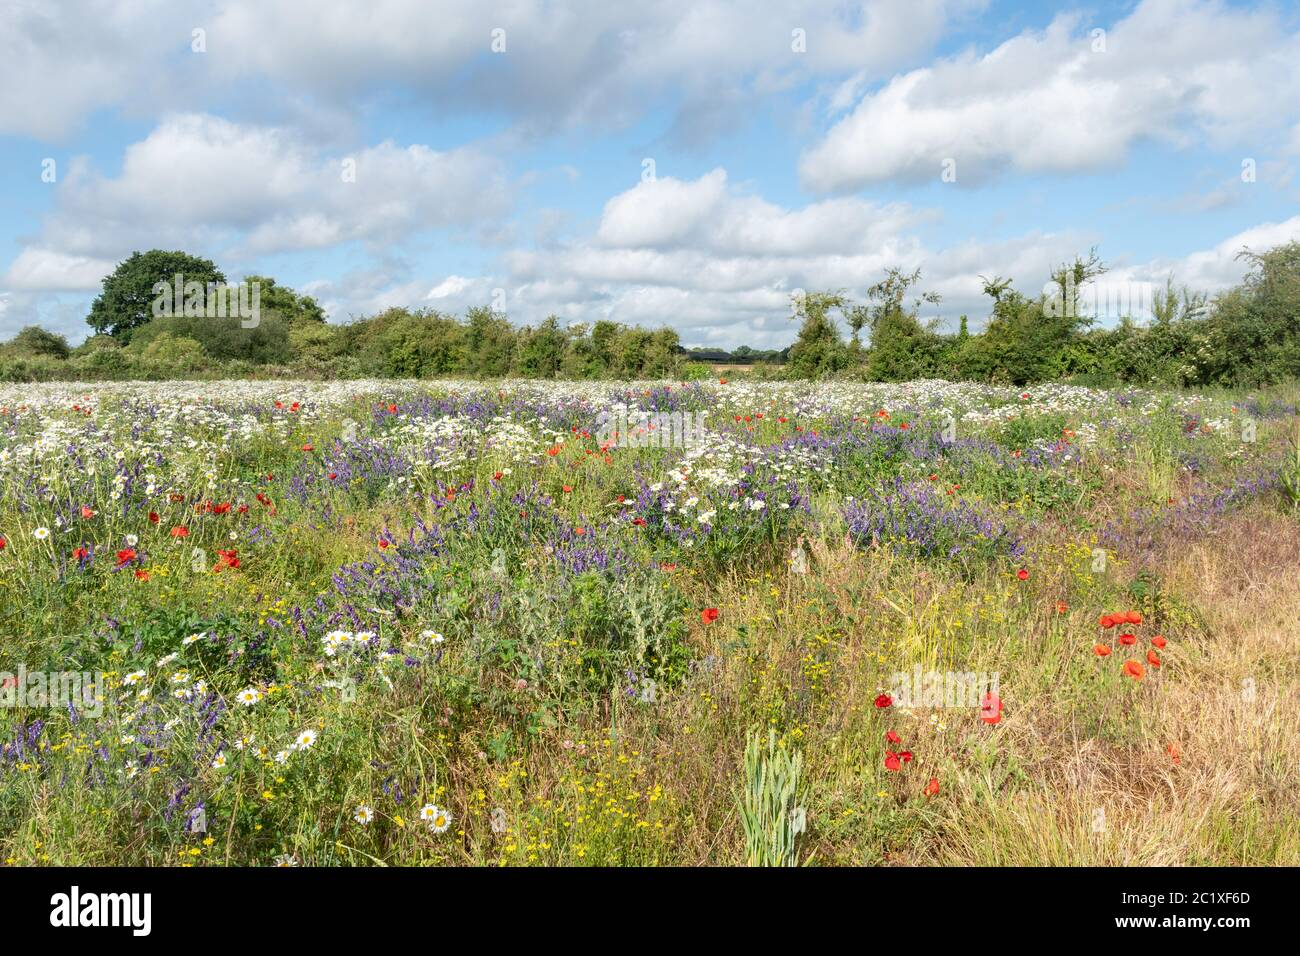 wildflower-meadow-in-hampshire-uk-with-colourful-wildflowers-including-red-poppies-tufted-vetch-and-oxeye-daisies-summer-countryside-landscape-2C1XF6D.jpg